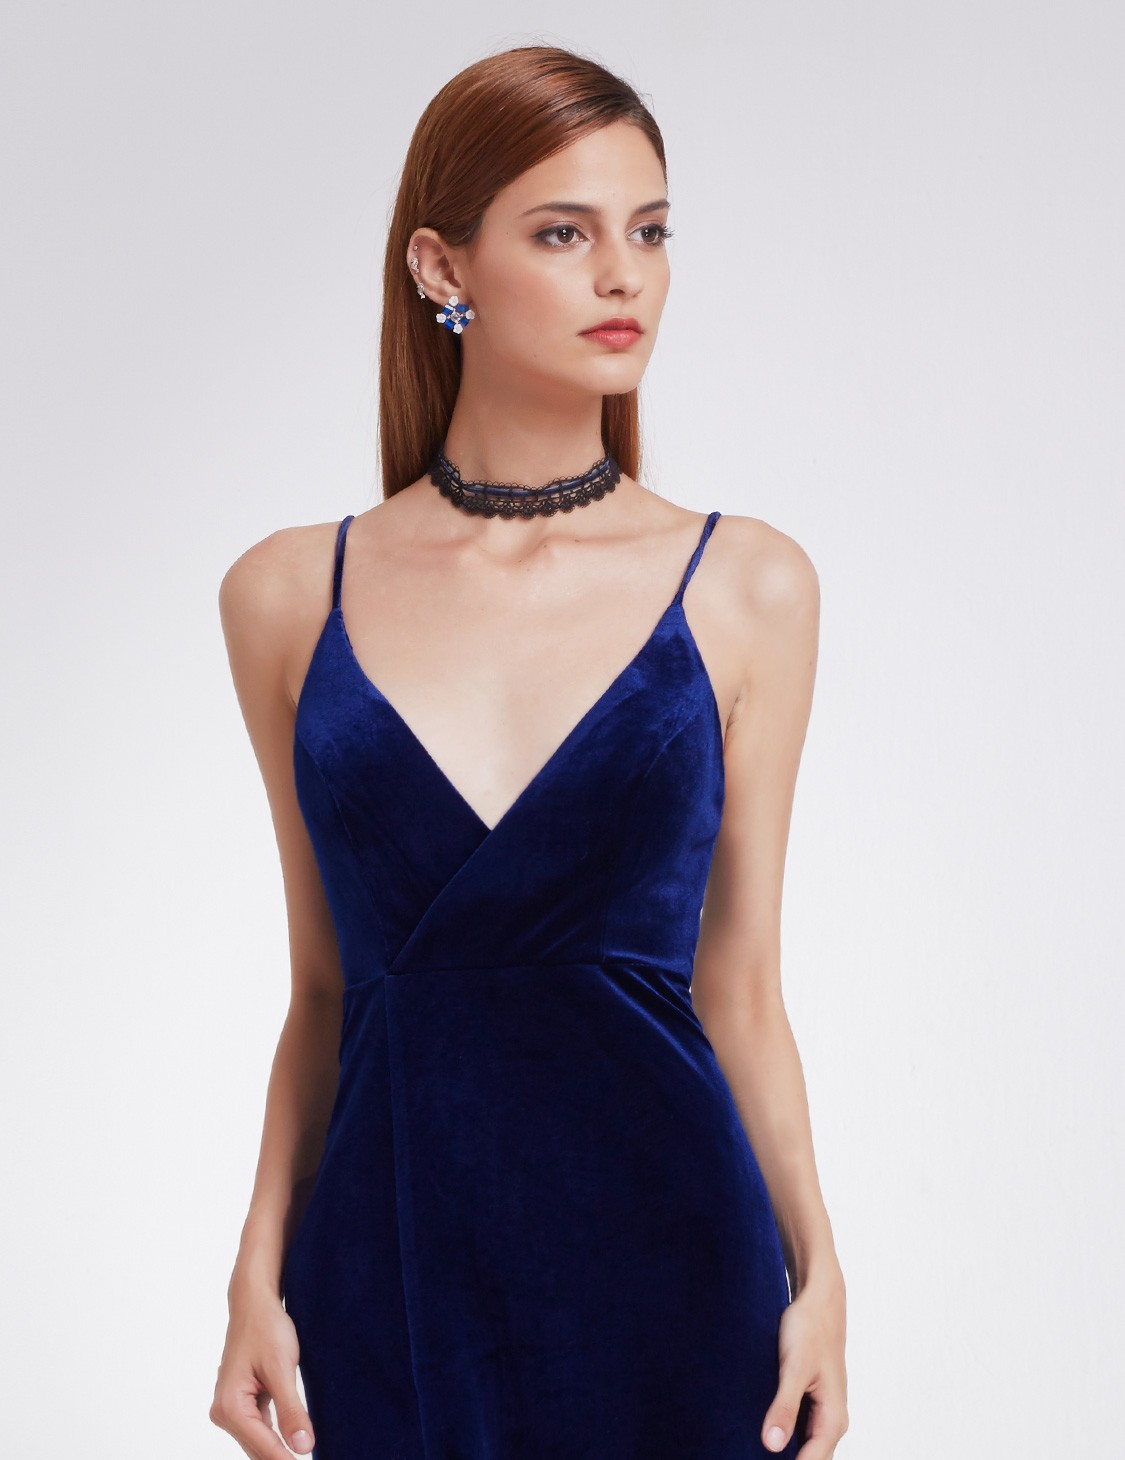 Evening Dresses From UK